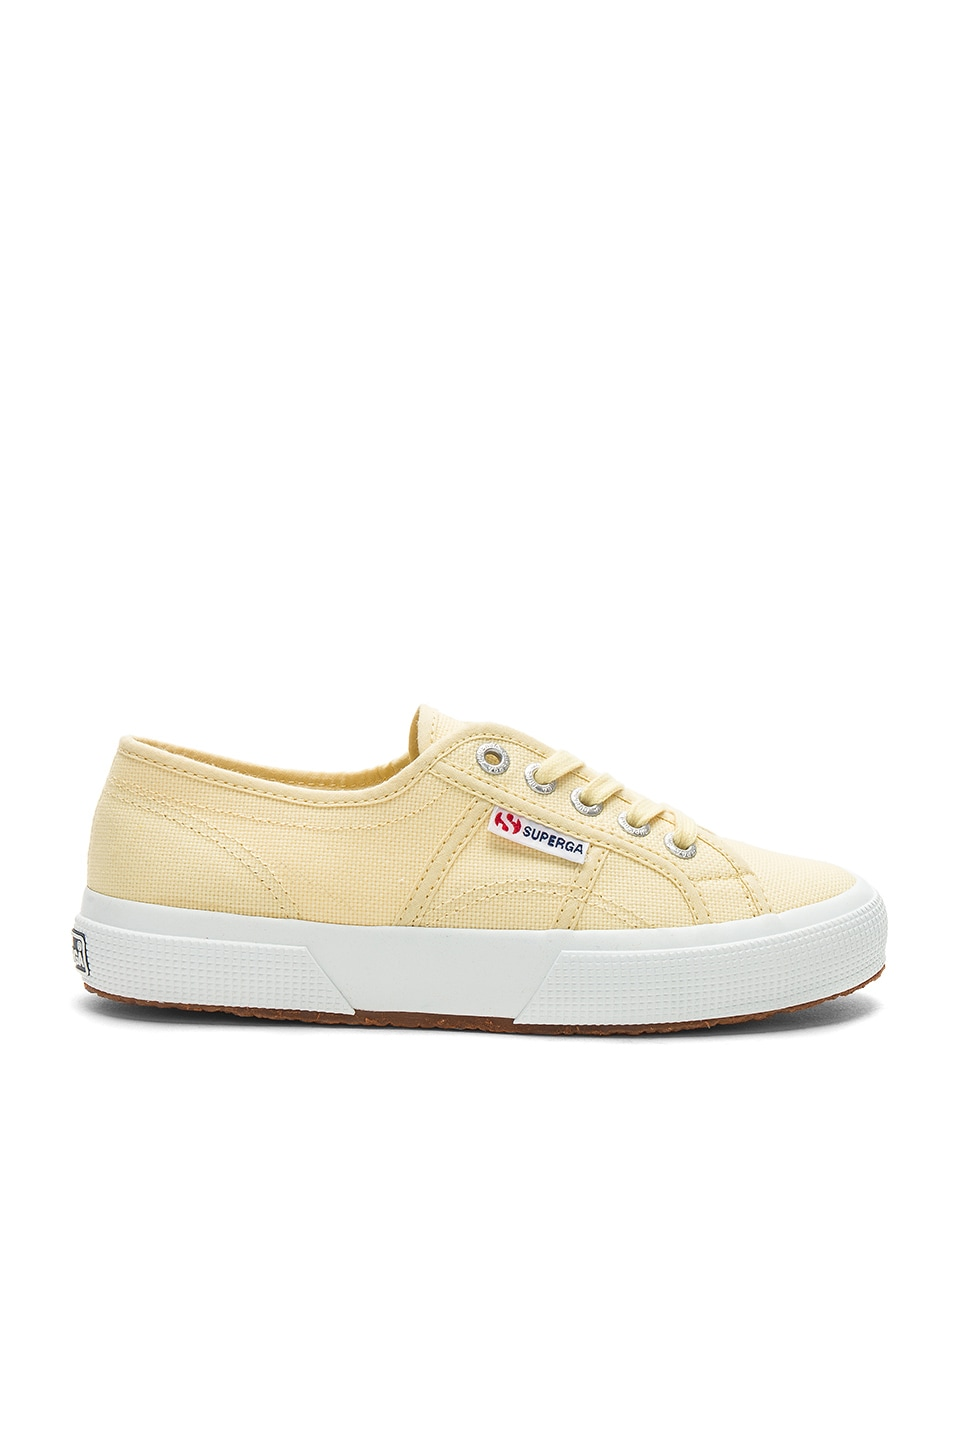 Superga 2750 Classic Sneaker in Pale Yellow